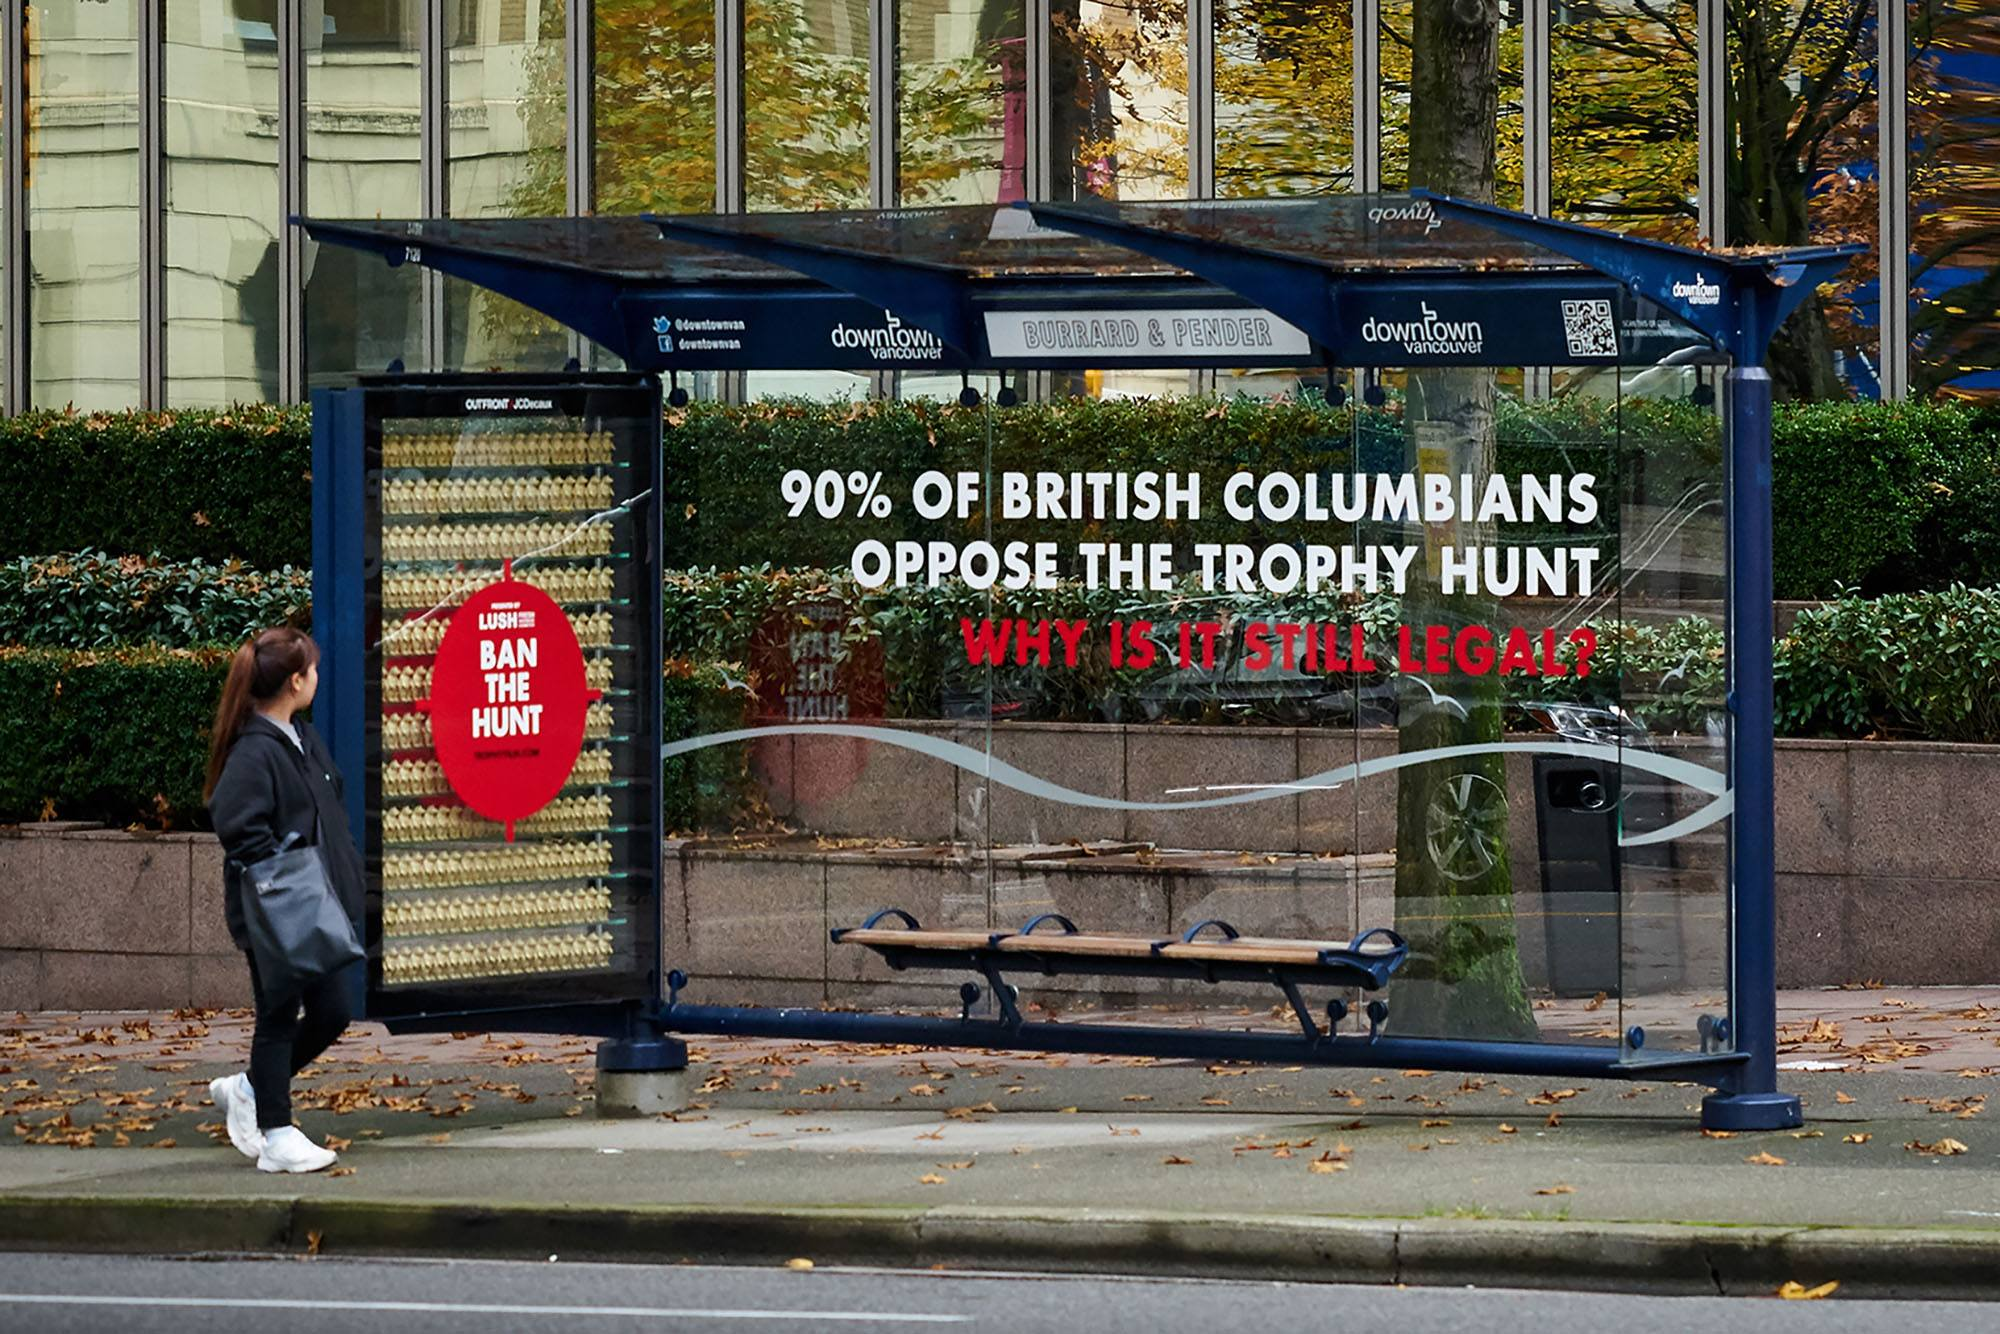 Lush has turned a bus shelter at West Pender and Burrard in Vancouver into a memorial to the grizzlies killed in the trophy hunt. (Lush Cosmetics)